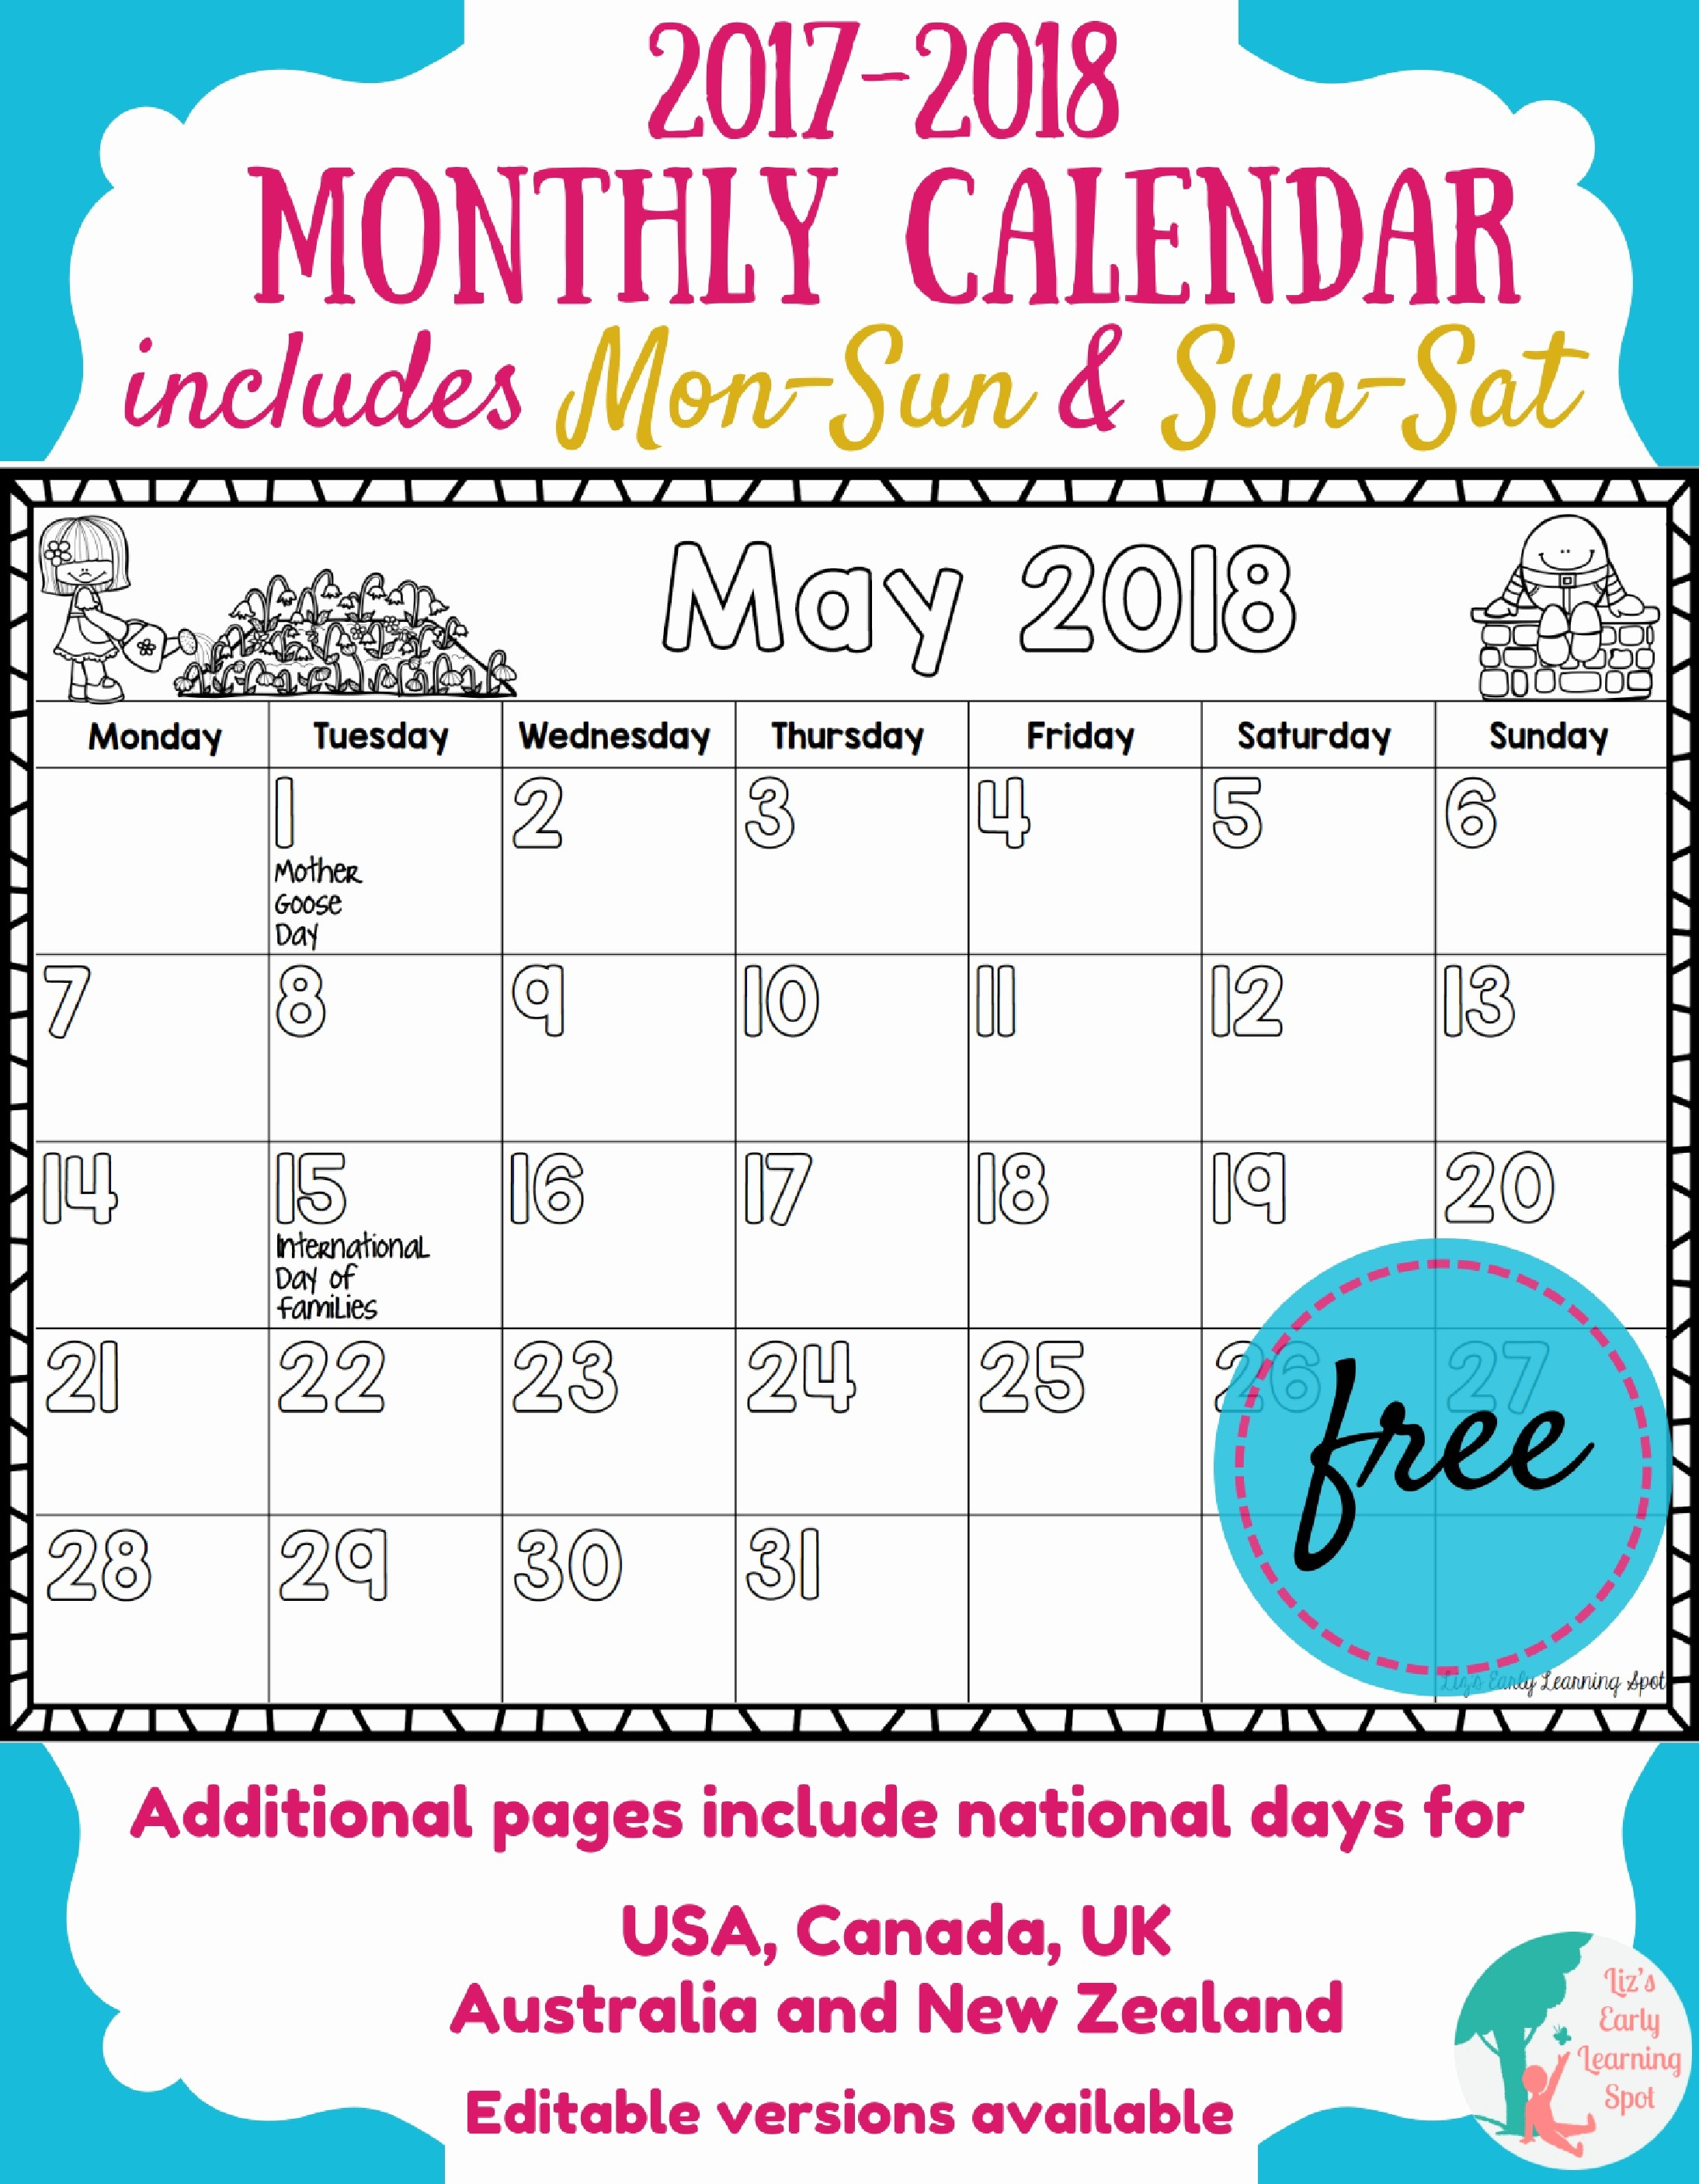 Free Printable Weekly Calendars 2017 Fresh Free 2017 2018 Monthly Calendar for Kids